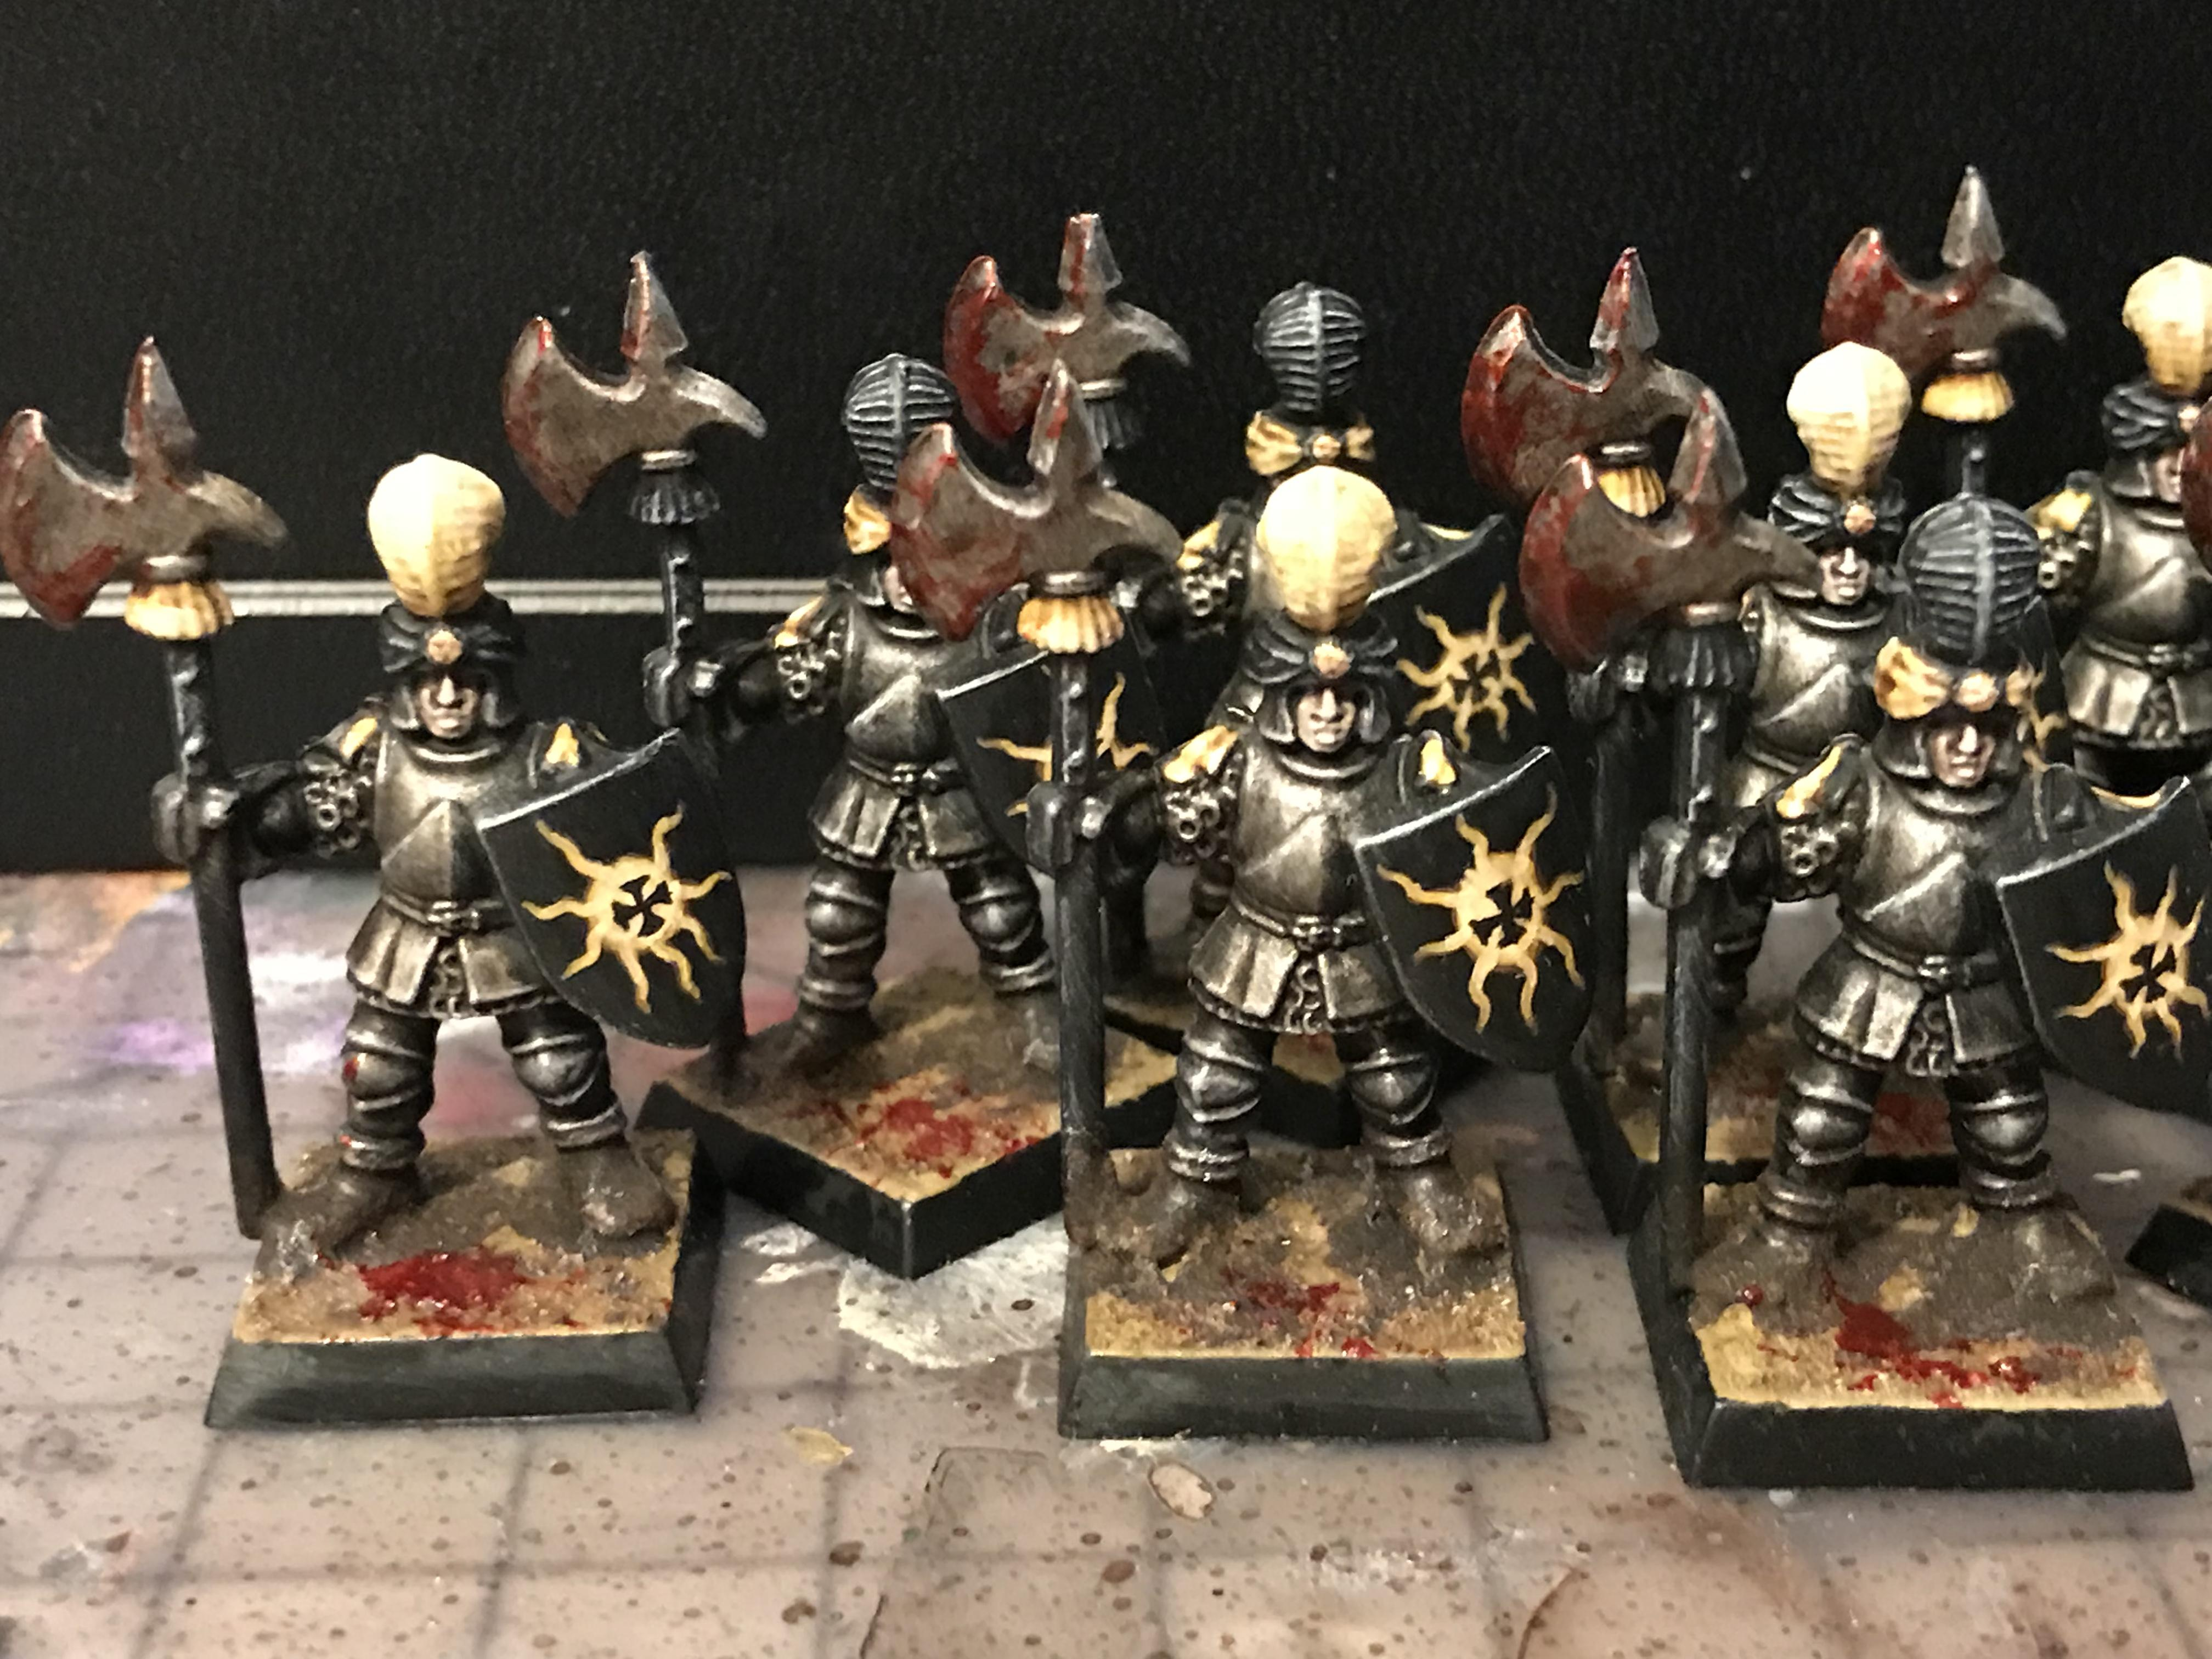 Archers, Averland, Battle, Battles, Count, Crossbowmen, Empire, Game, General, Halbardiers, Hero, Leader, Leitdorf, Lord, Mad, Marius, Masters, Of, State, The, Troops, Warhammer Fantasy